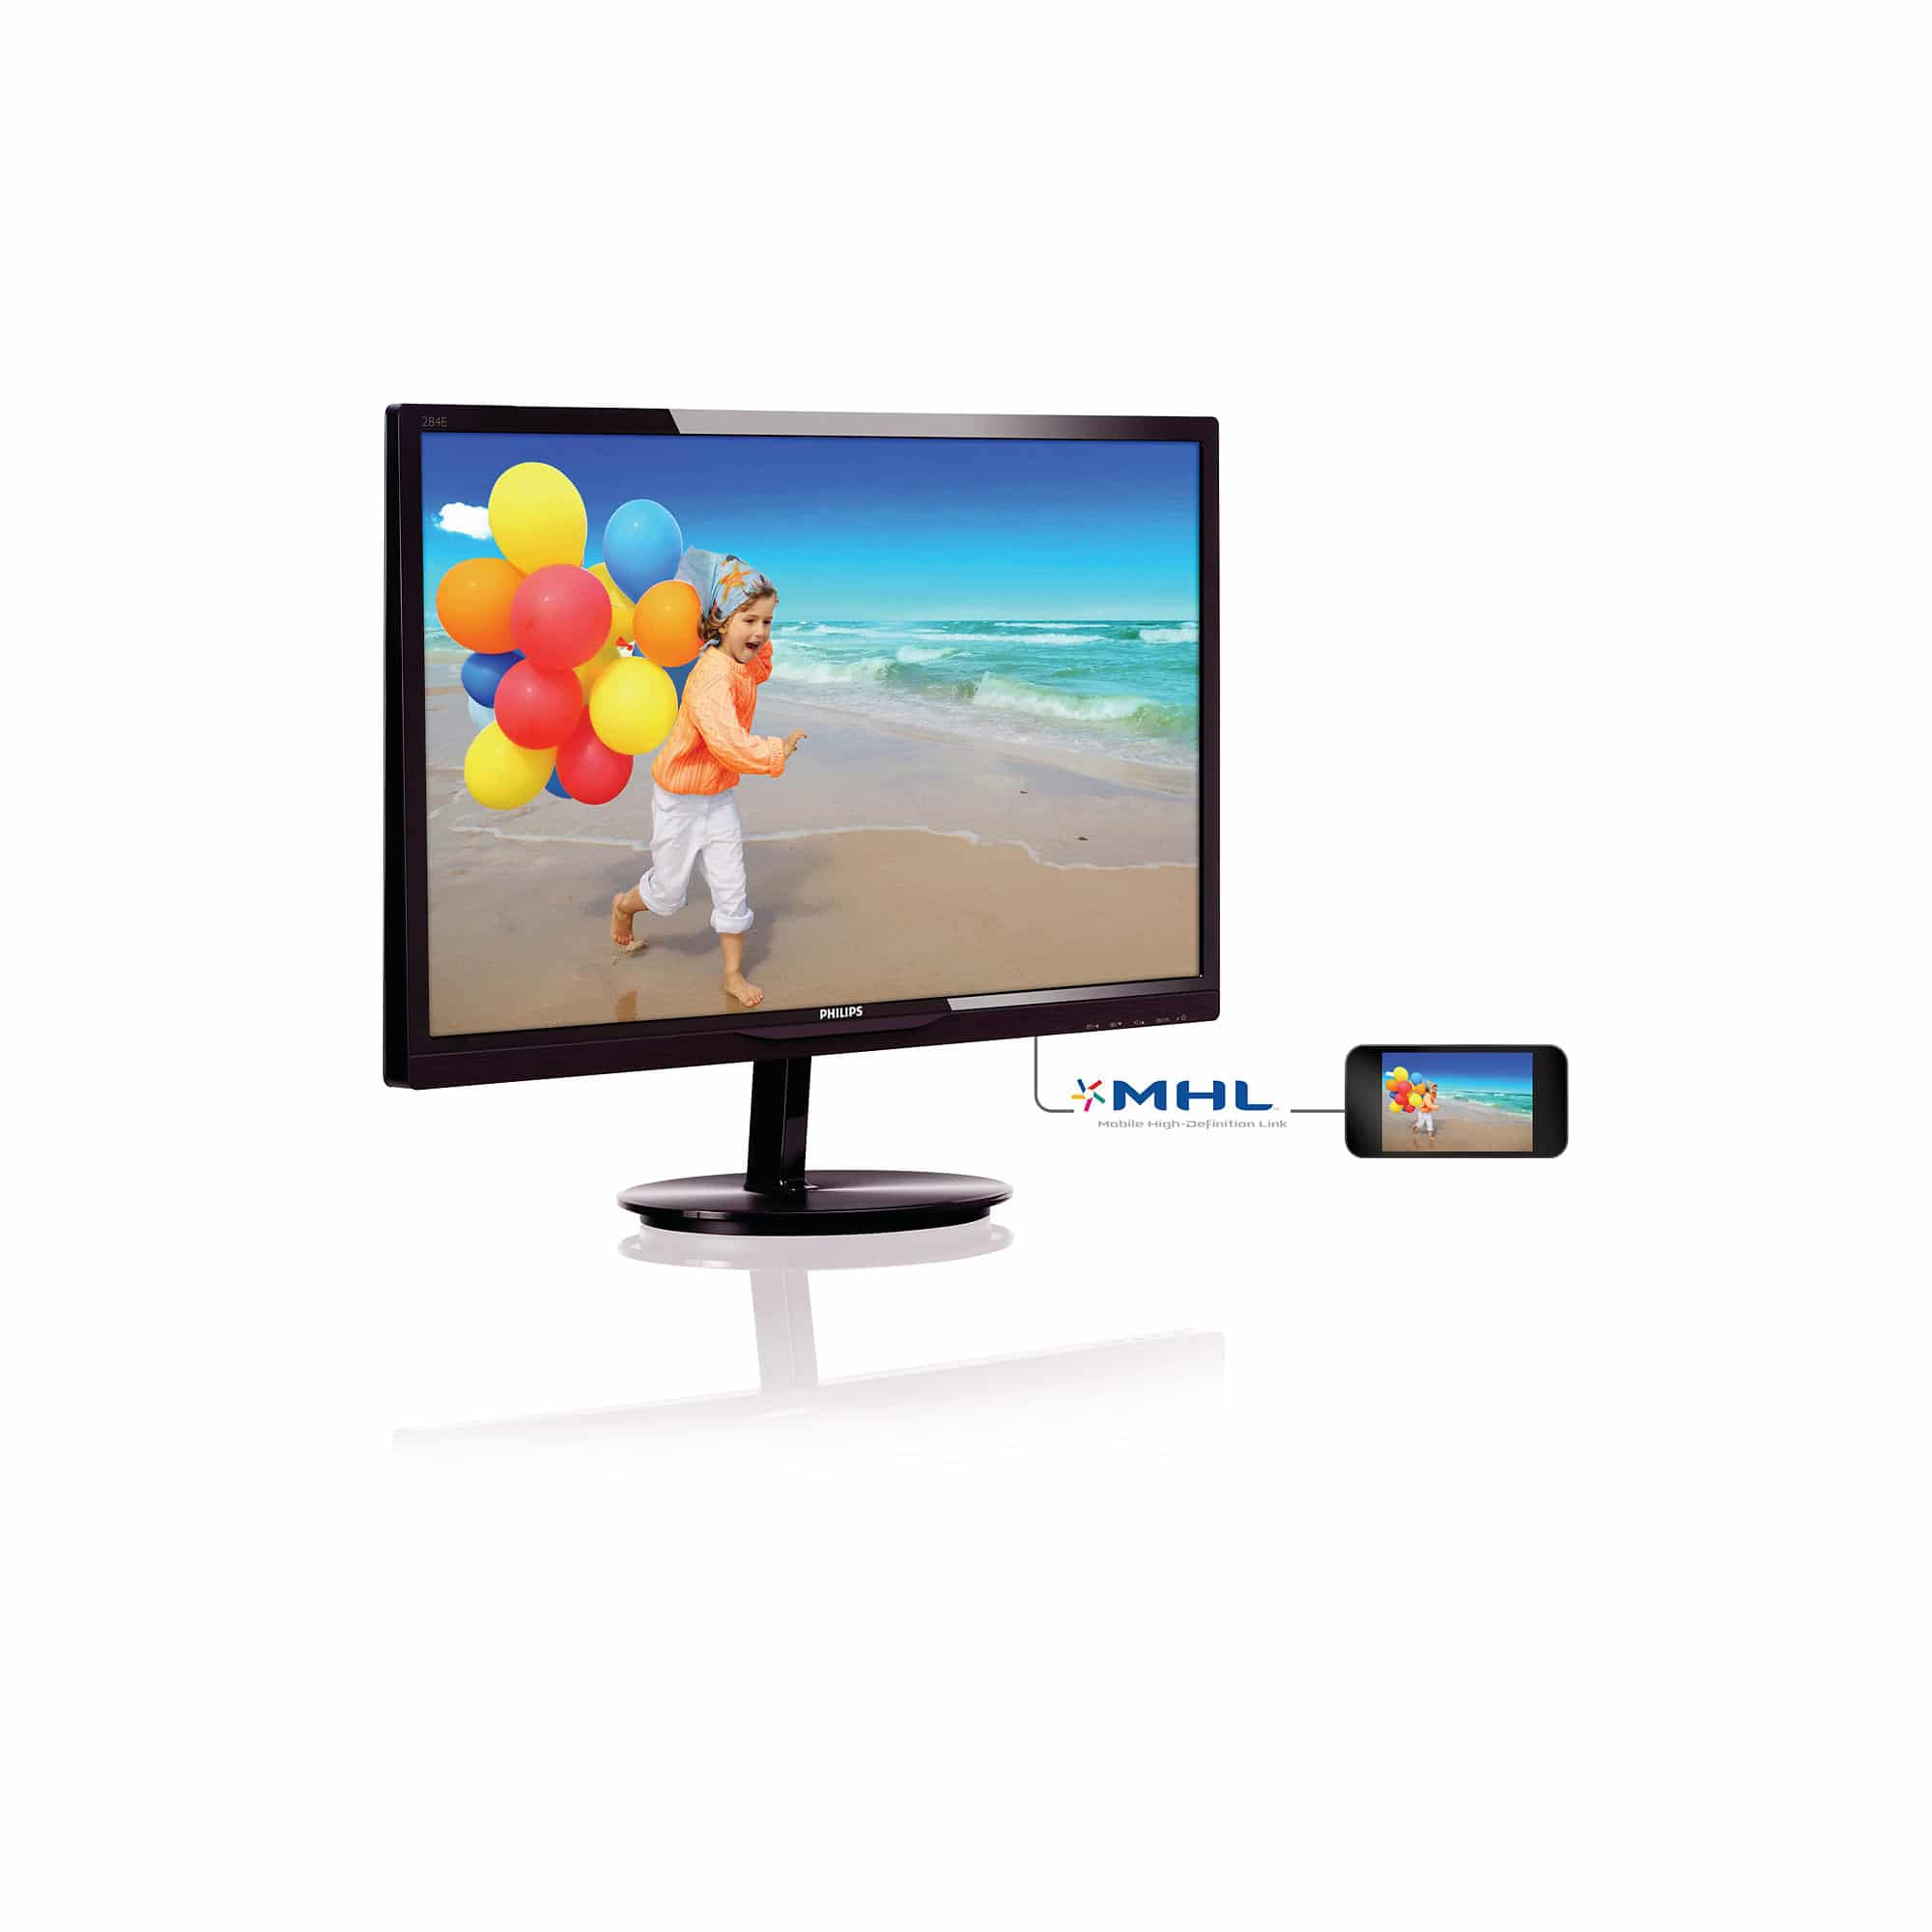 Photo of Testbericht: Philips 284E5QHAD 28 Zoll Monitor